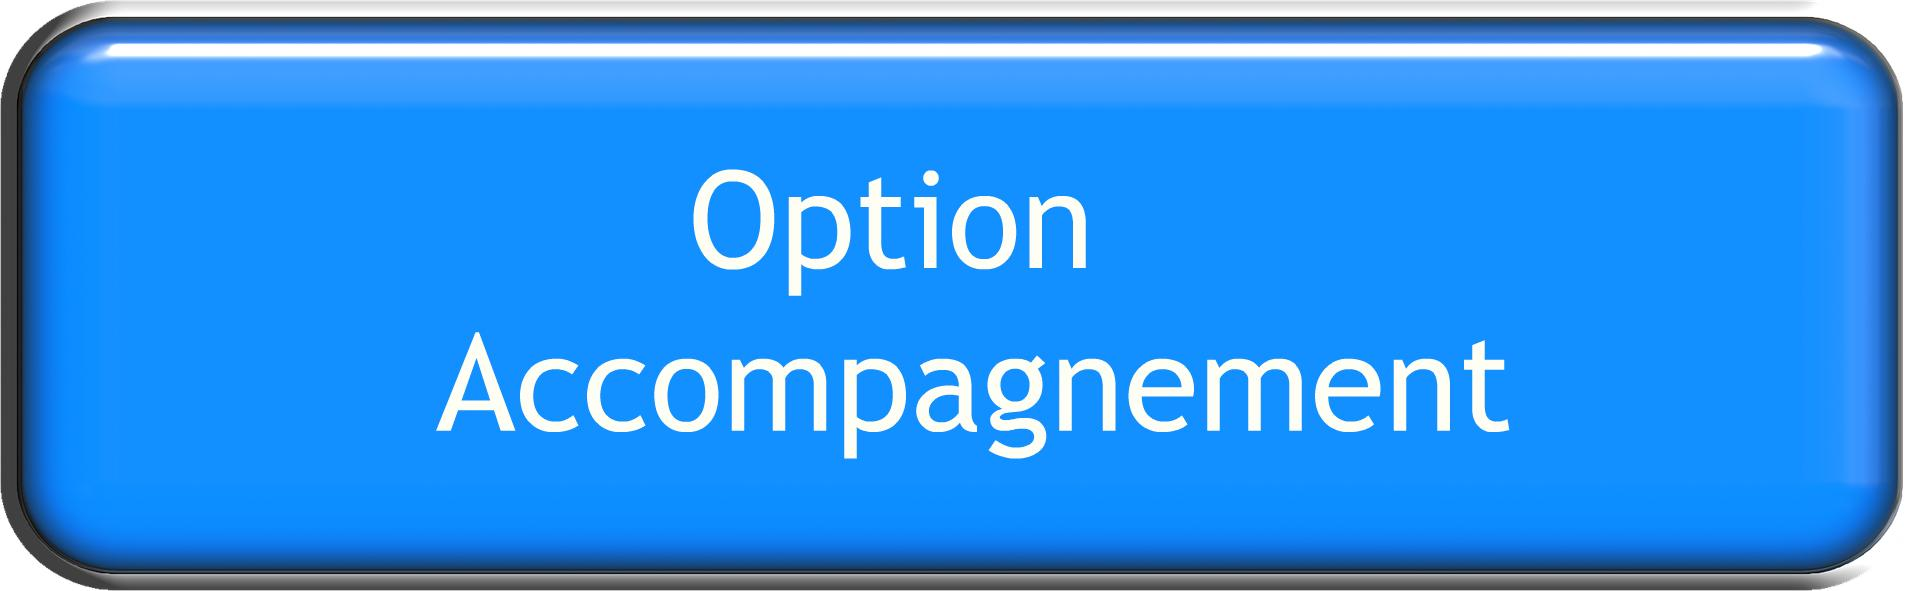 Option accompagnement